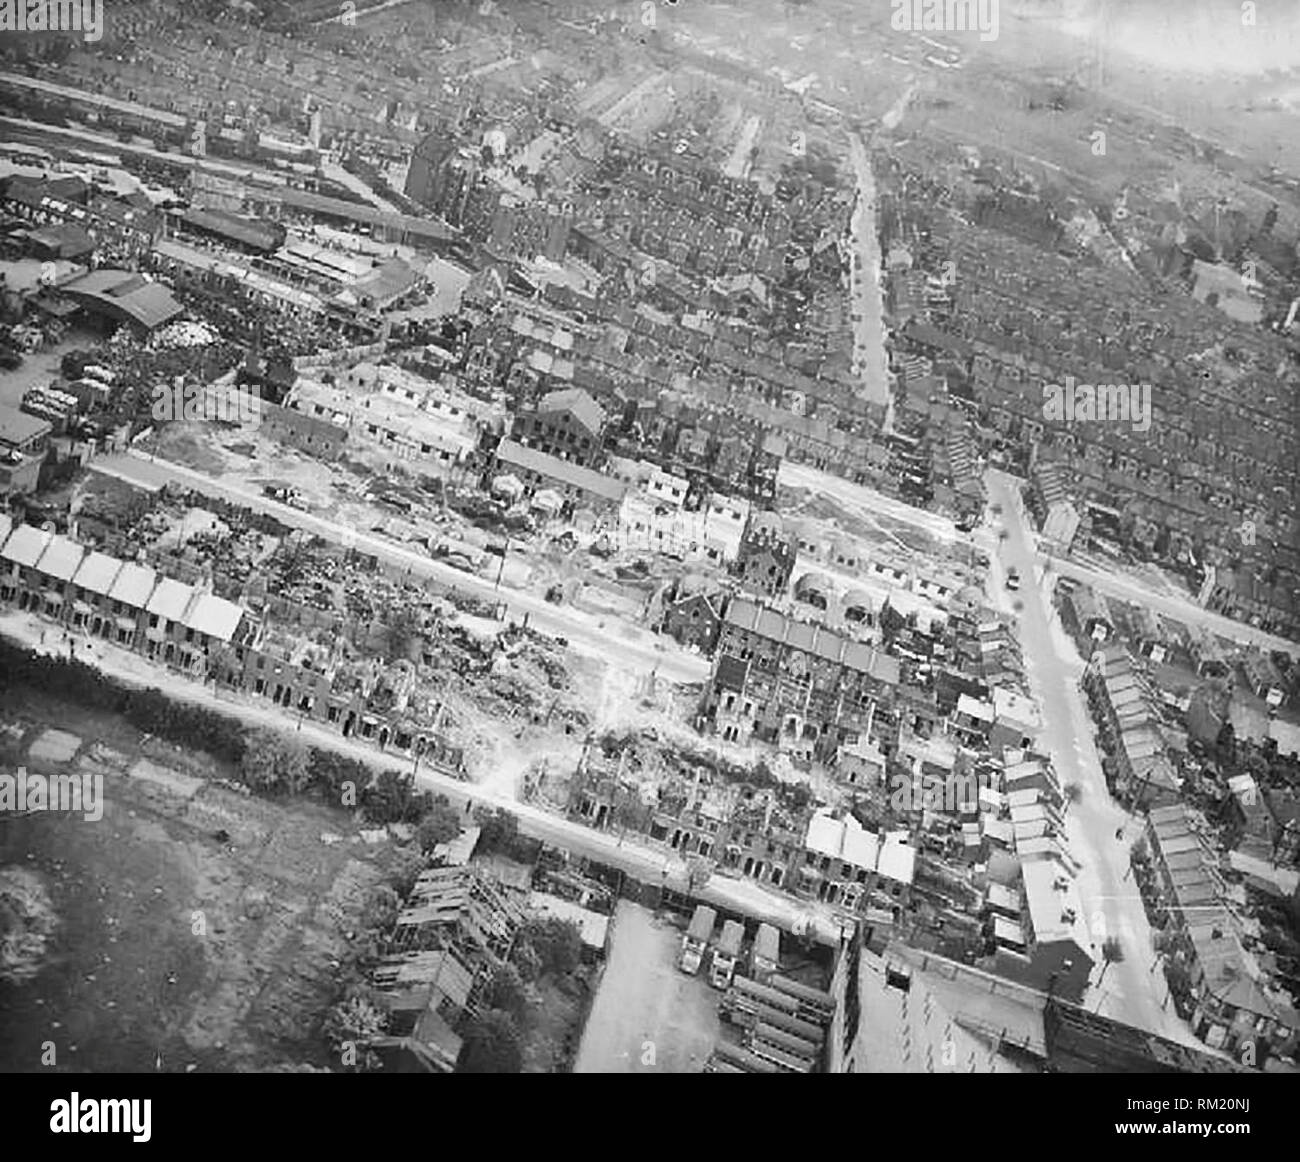 Bomb Damage in London, England, April 1945 Aerial view from the west of the damage resulting from a V2 rocket missile which exploded in the area of Boleyn and Priory Roads, Upton Park, East Ham, London E6, England at 10.30 am on 28 January 1945. Sixteen people were killed, twenty-seven seriously injured and sixty-nine slightly wounded. 5 houses were completely demolished, 16 partly demolished and a further 59 were seriously damaged. - Stock Image